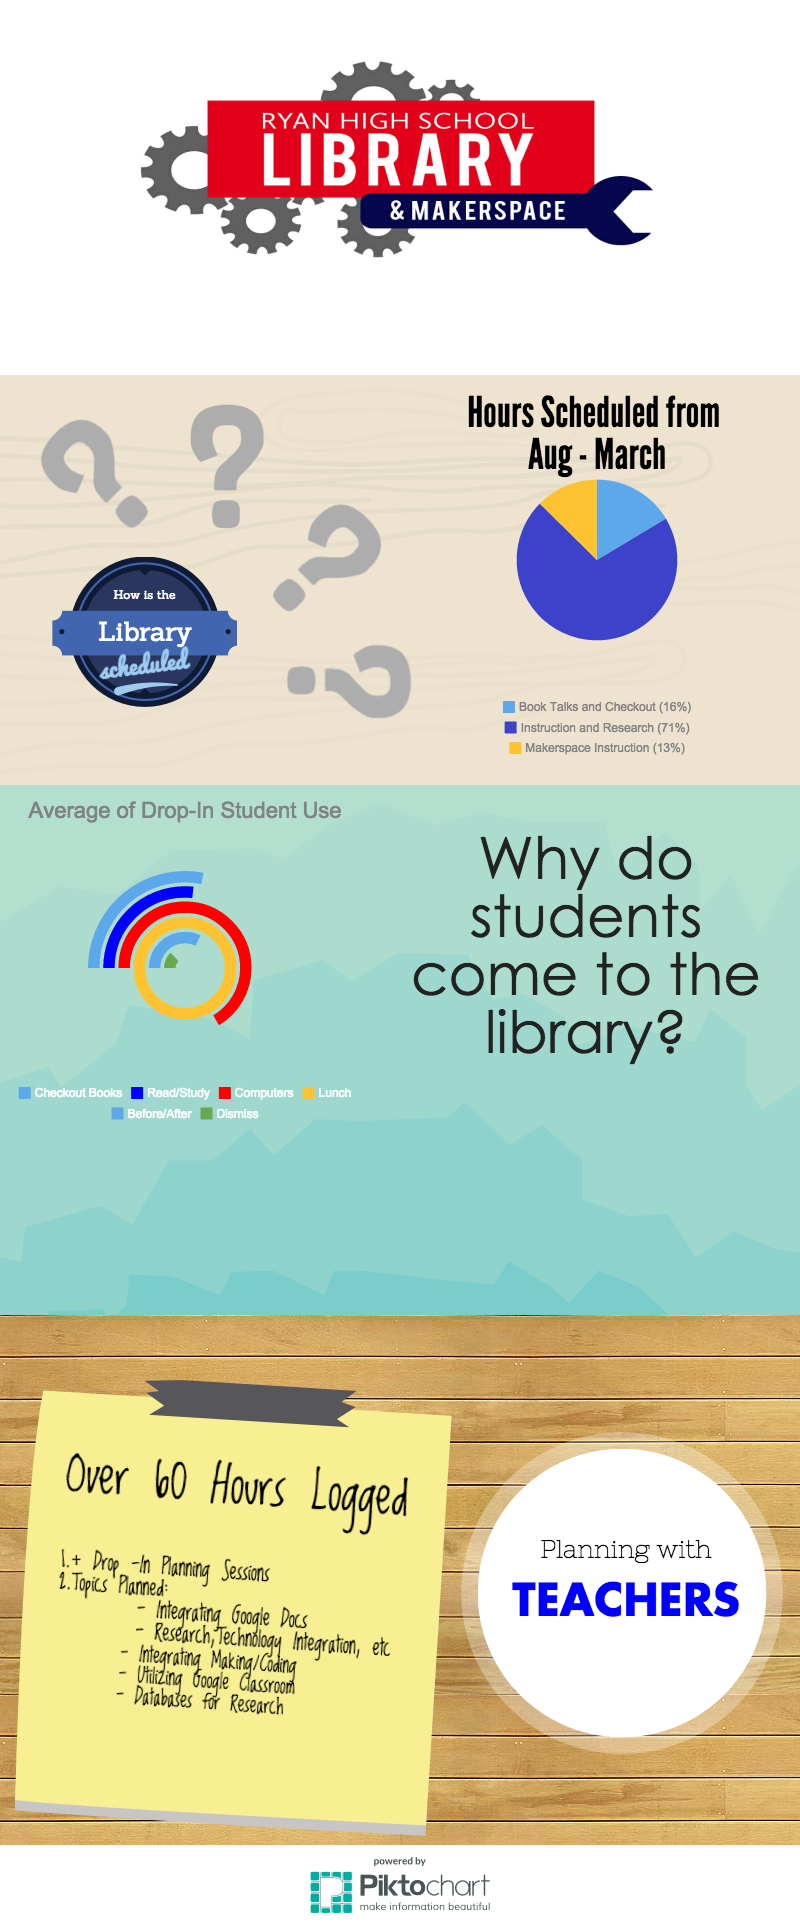 A Library AND a Makerspace